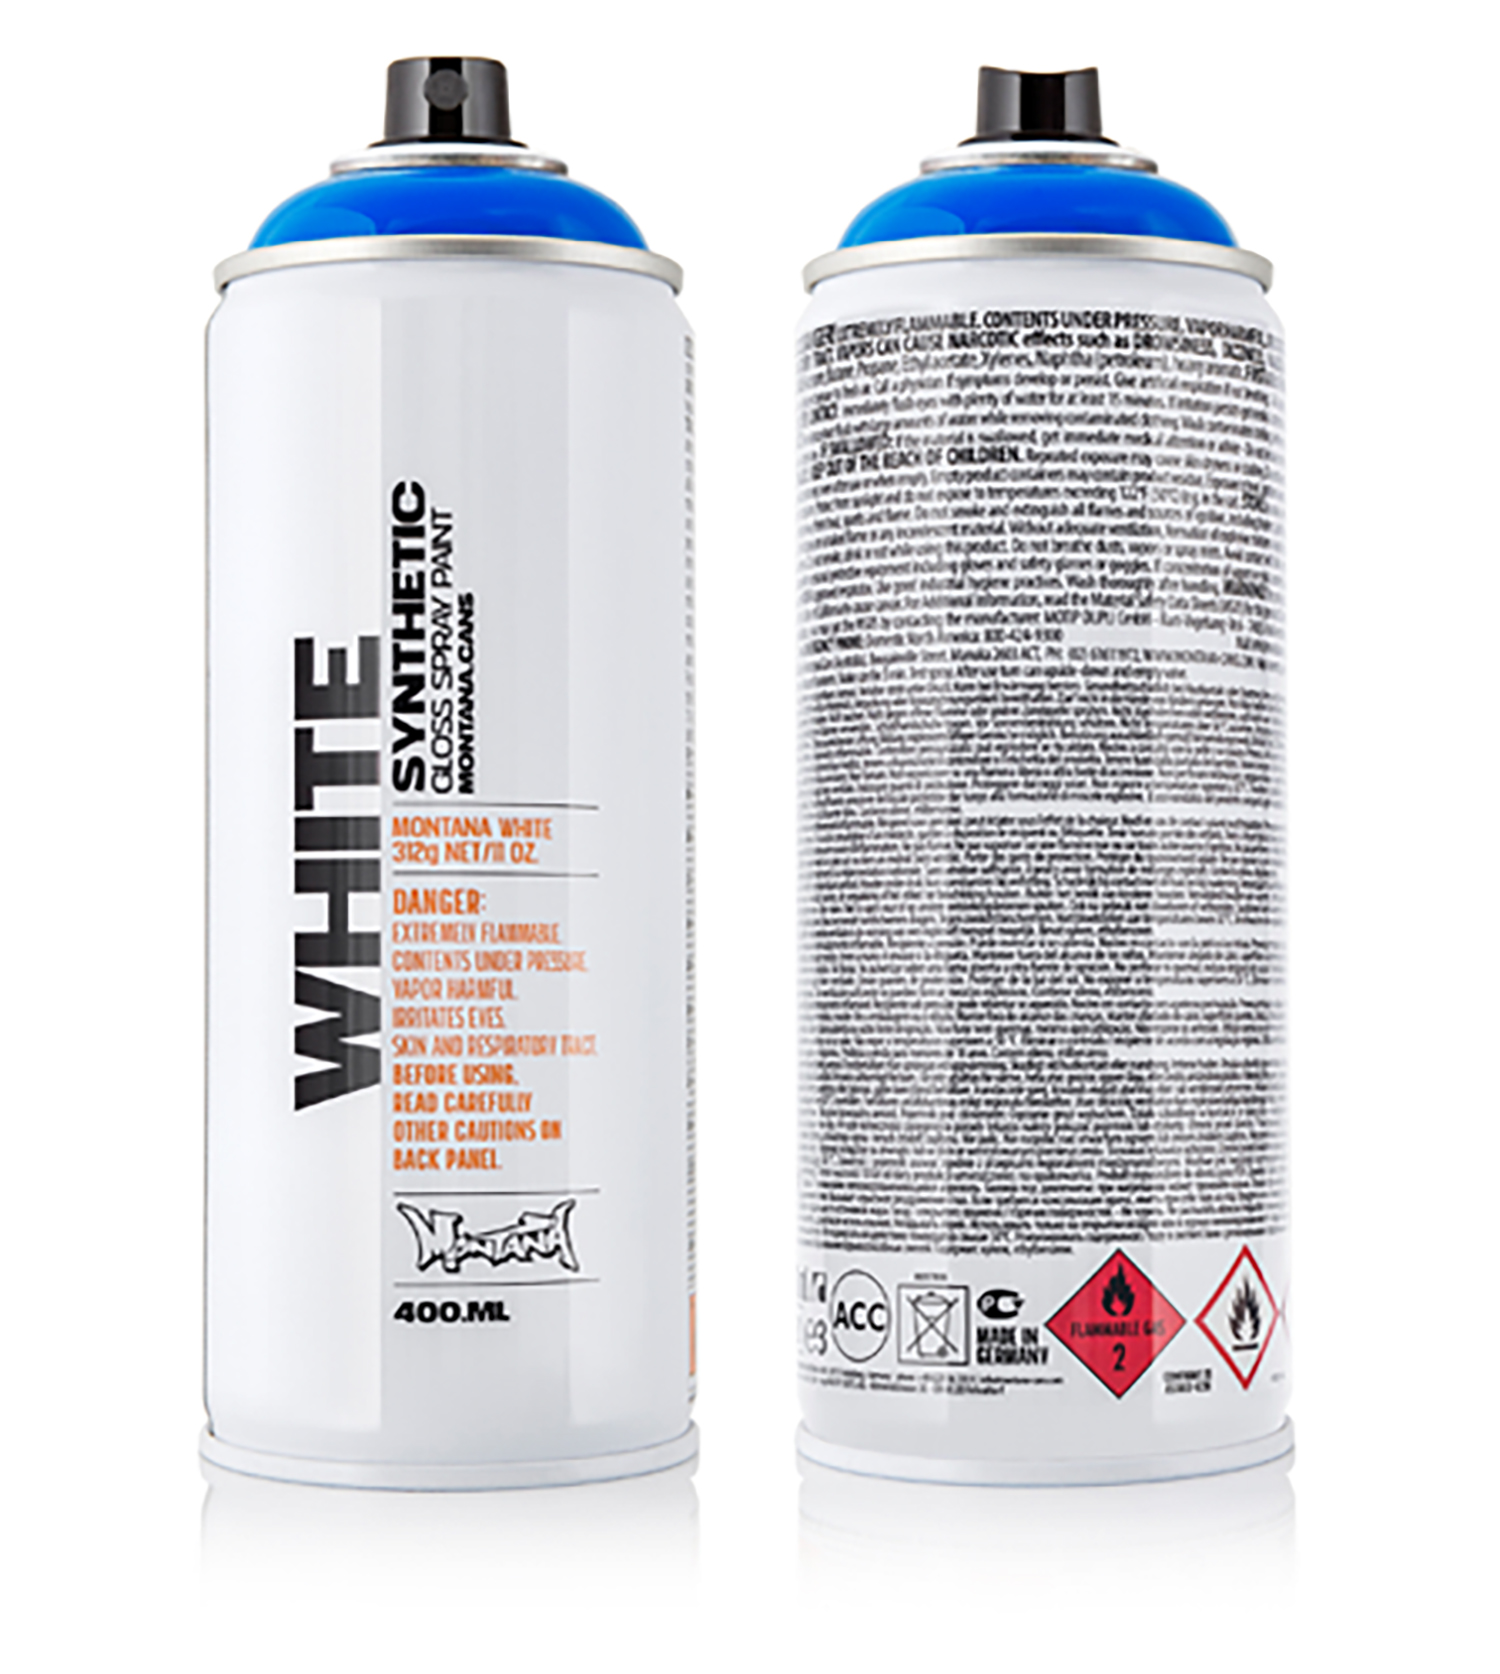 MONTANA-WHITE-SPRAY-400ML-5060